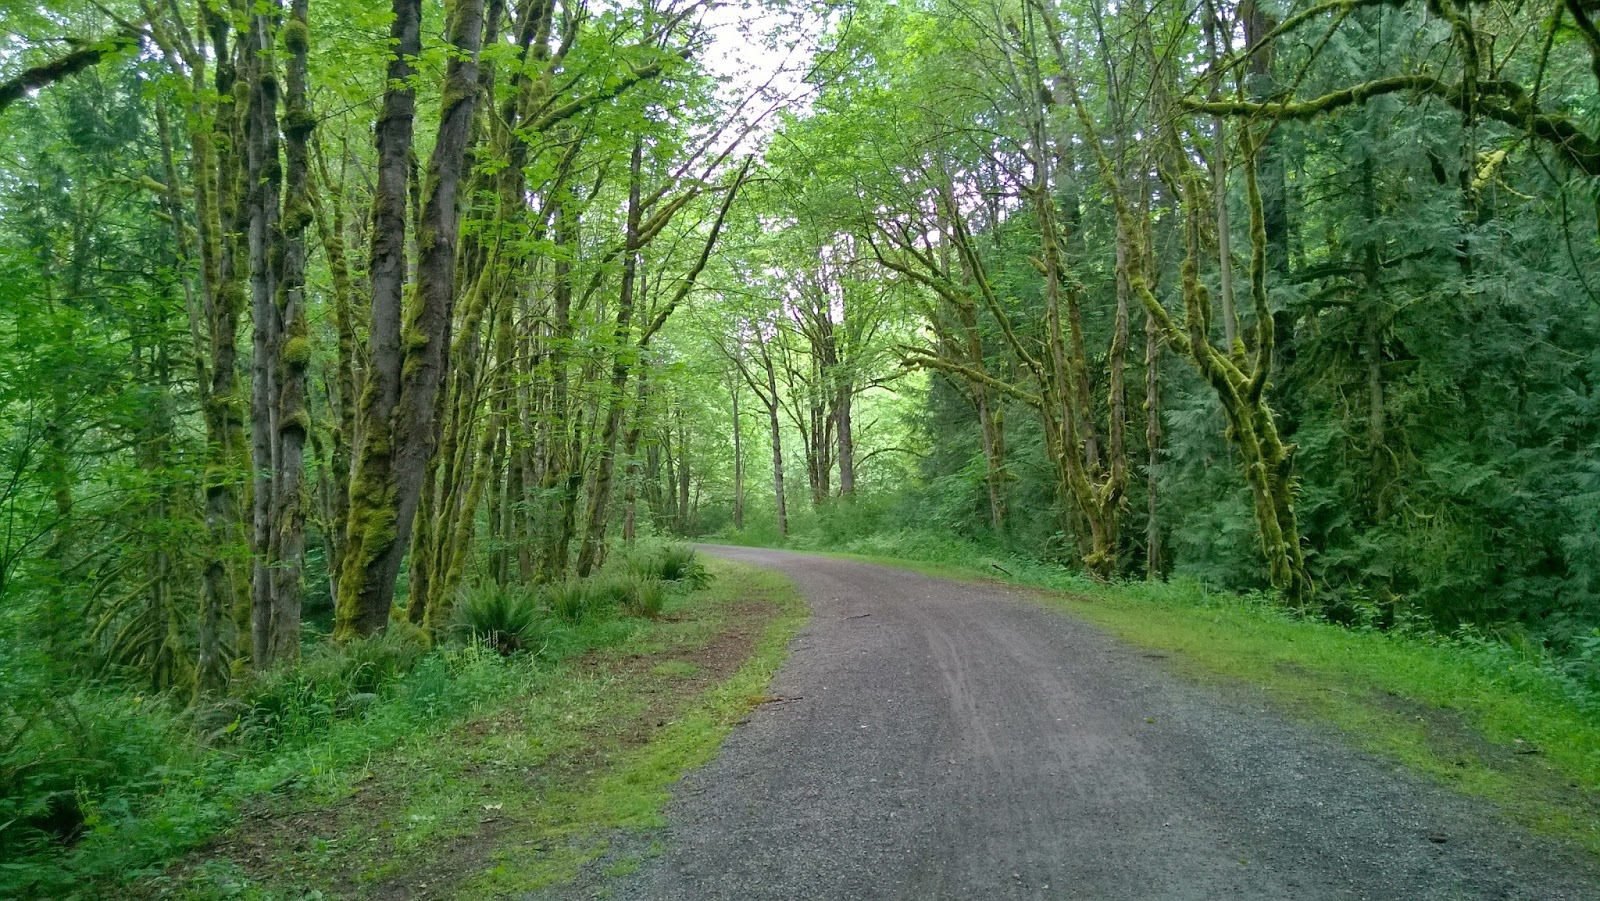 Biking Adventures: Snoqualmie Valley Trail - Fall City to